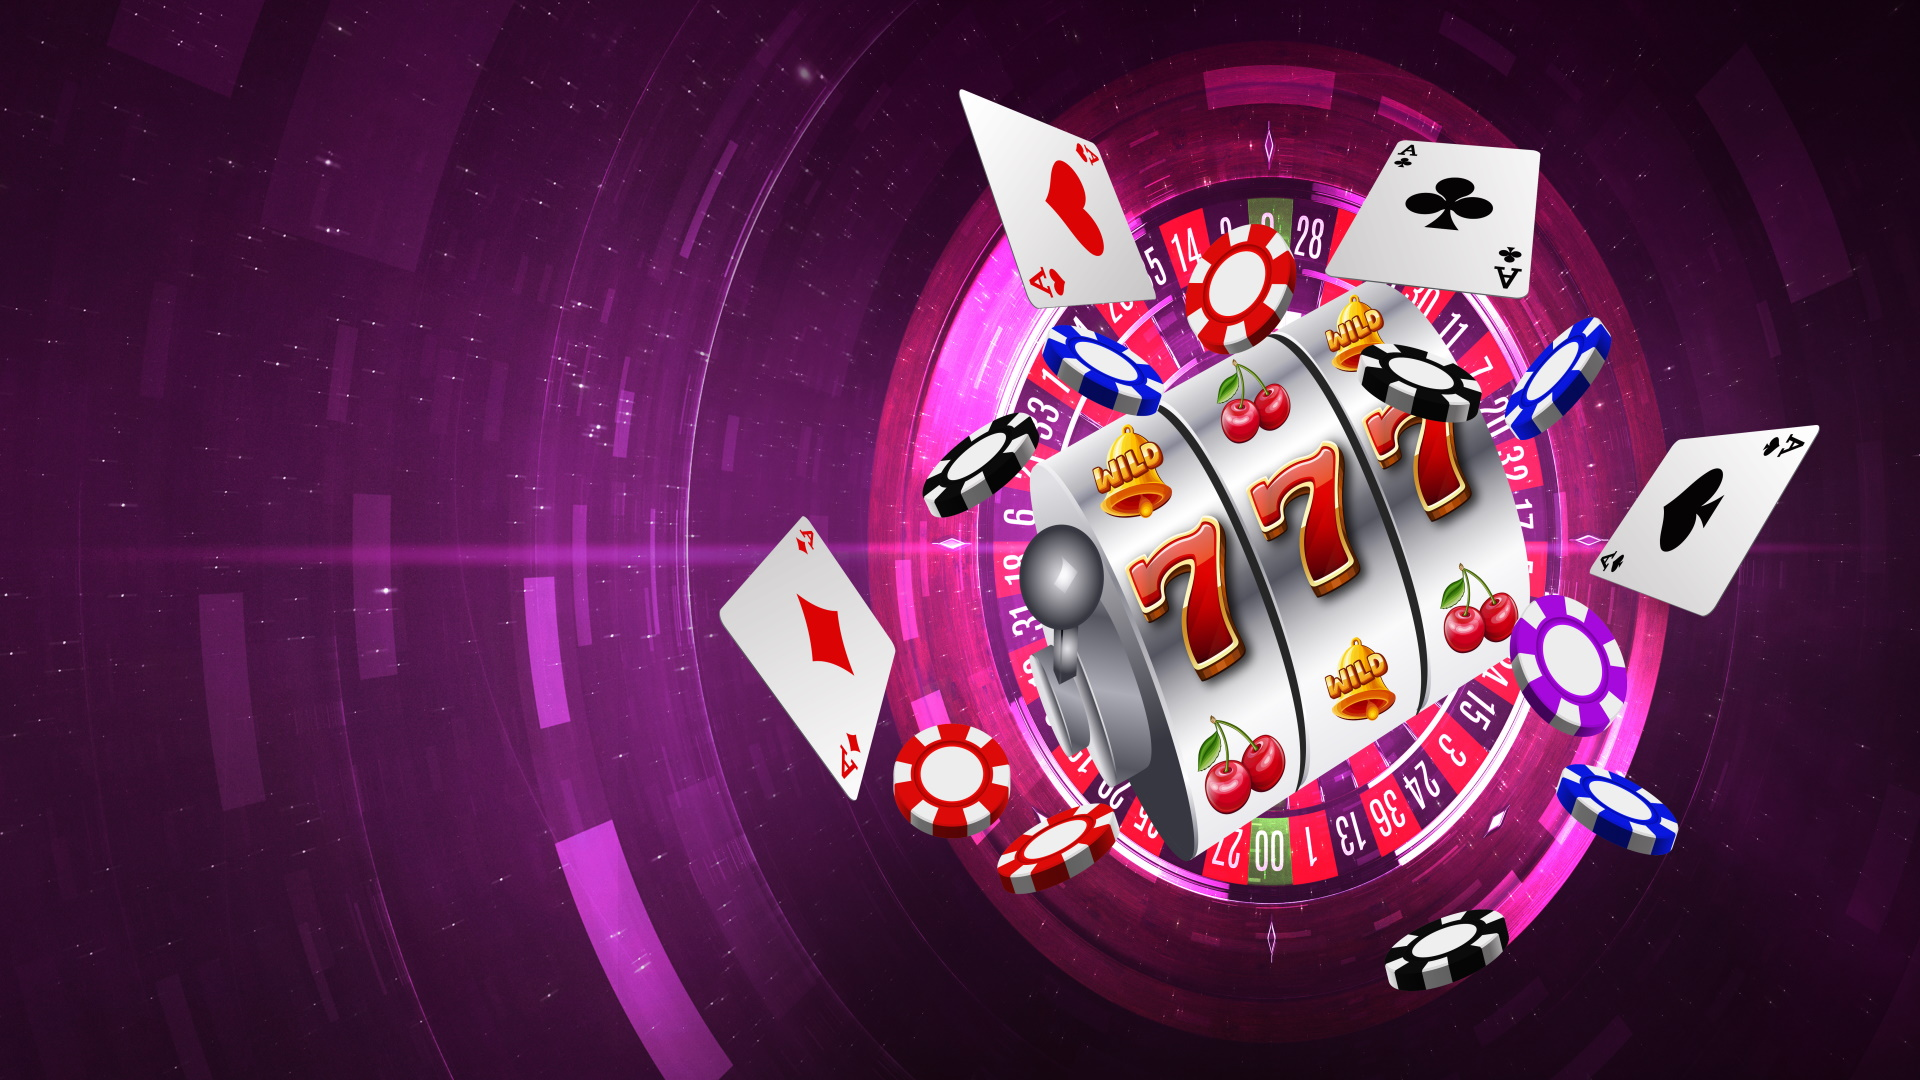 Details you can get about online gambling